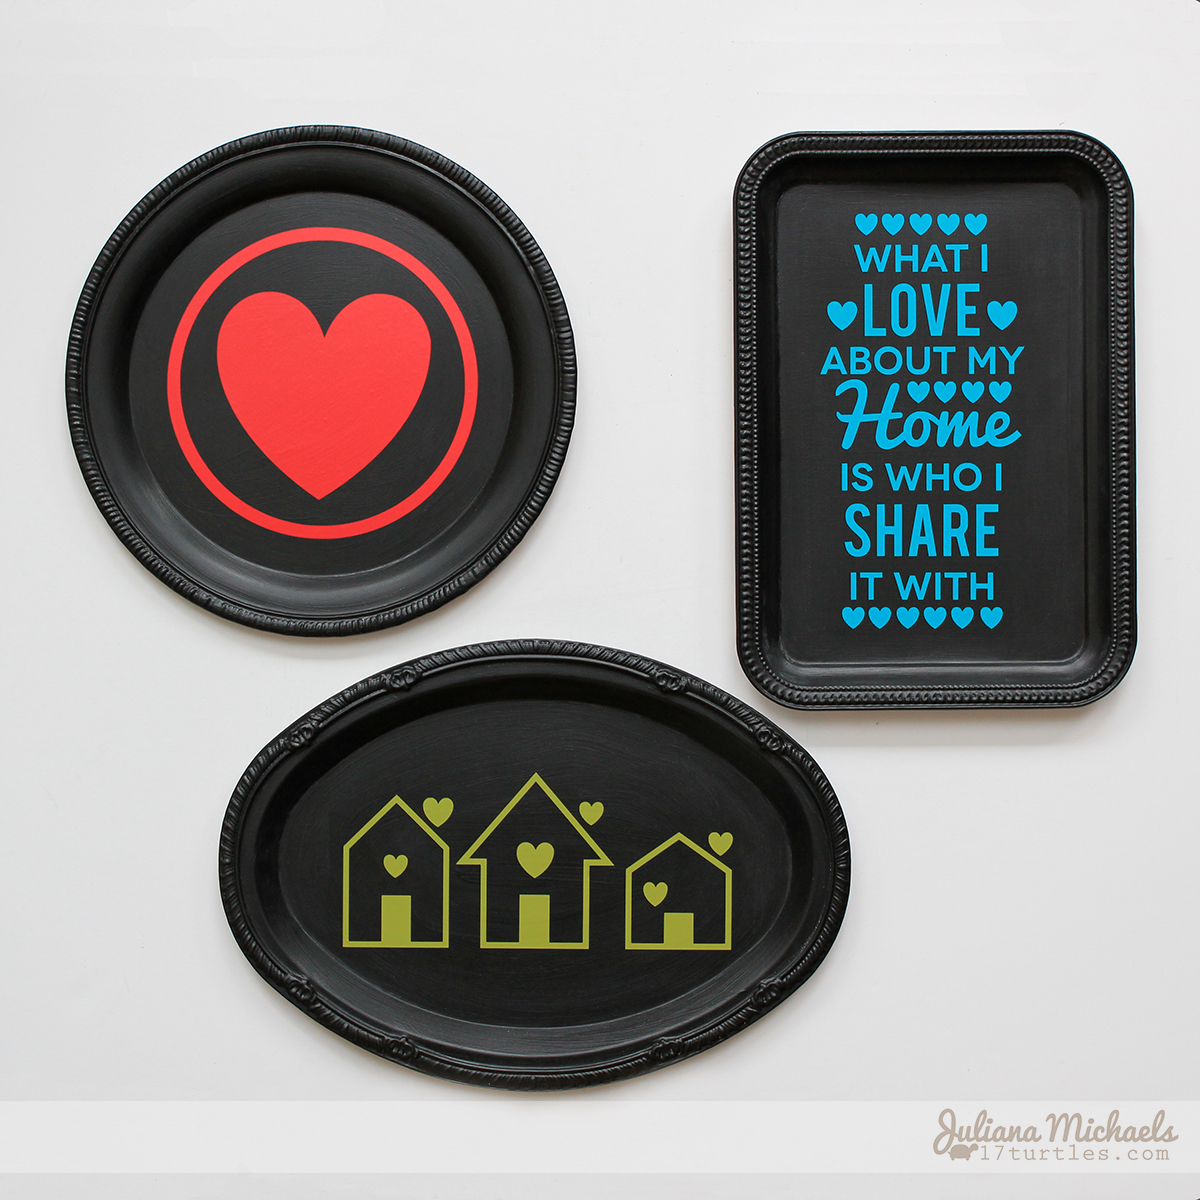 Dollar Tree Trays Wall Decor by Juliana Michaels featuring SRM Stickers Adhesive Vinyl